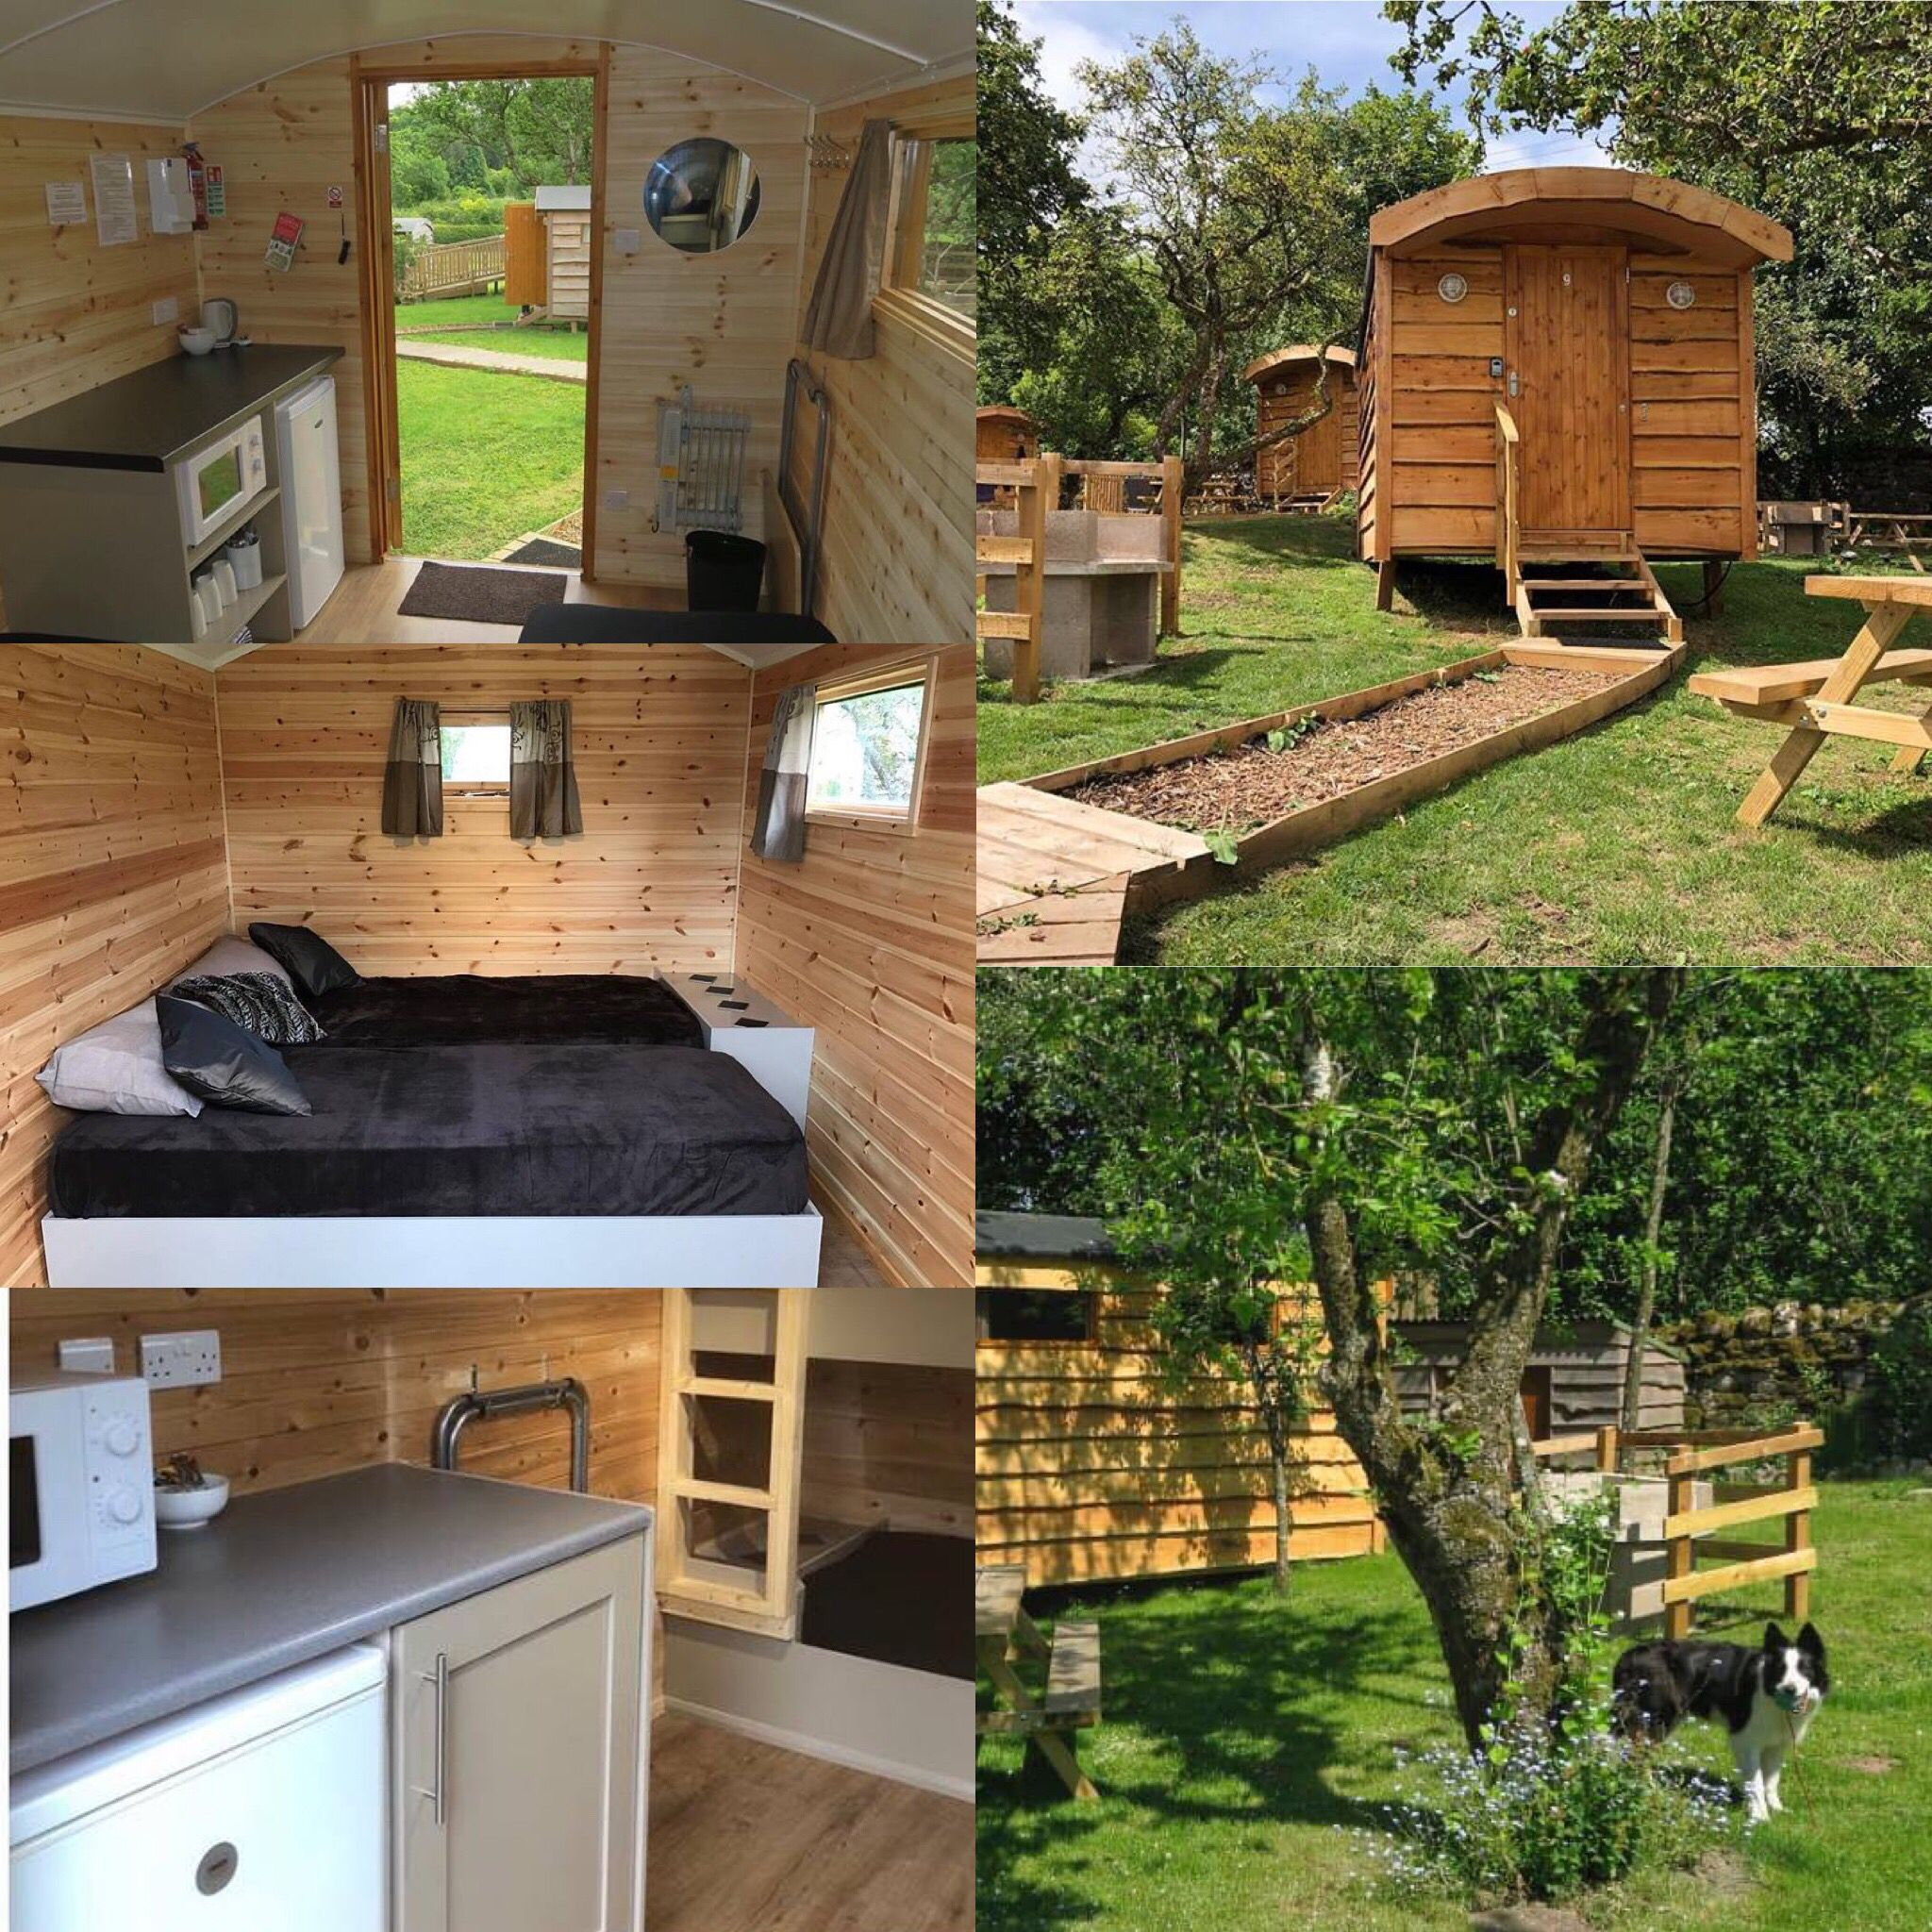 Orchard Hideaways Dog Friendly Camping Pods Penrith Camping Pod